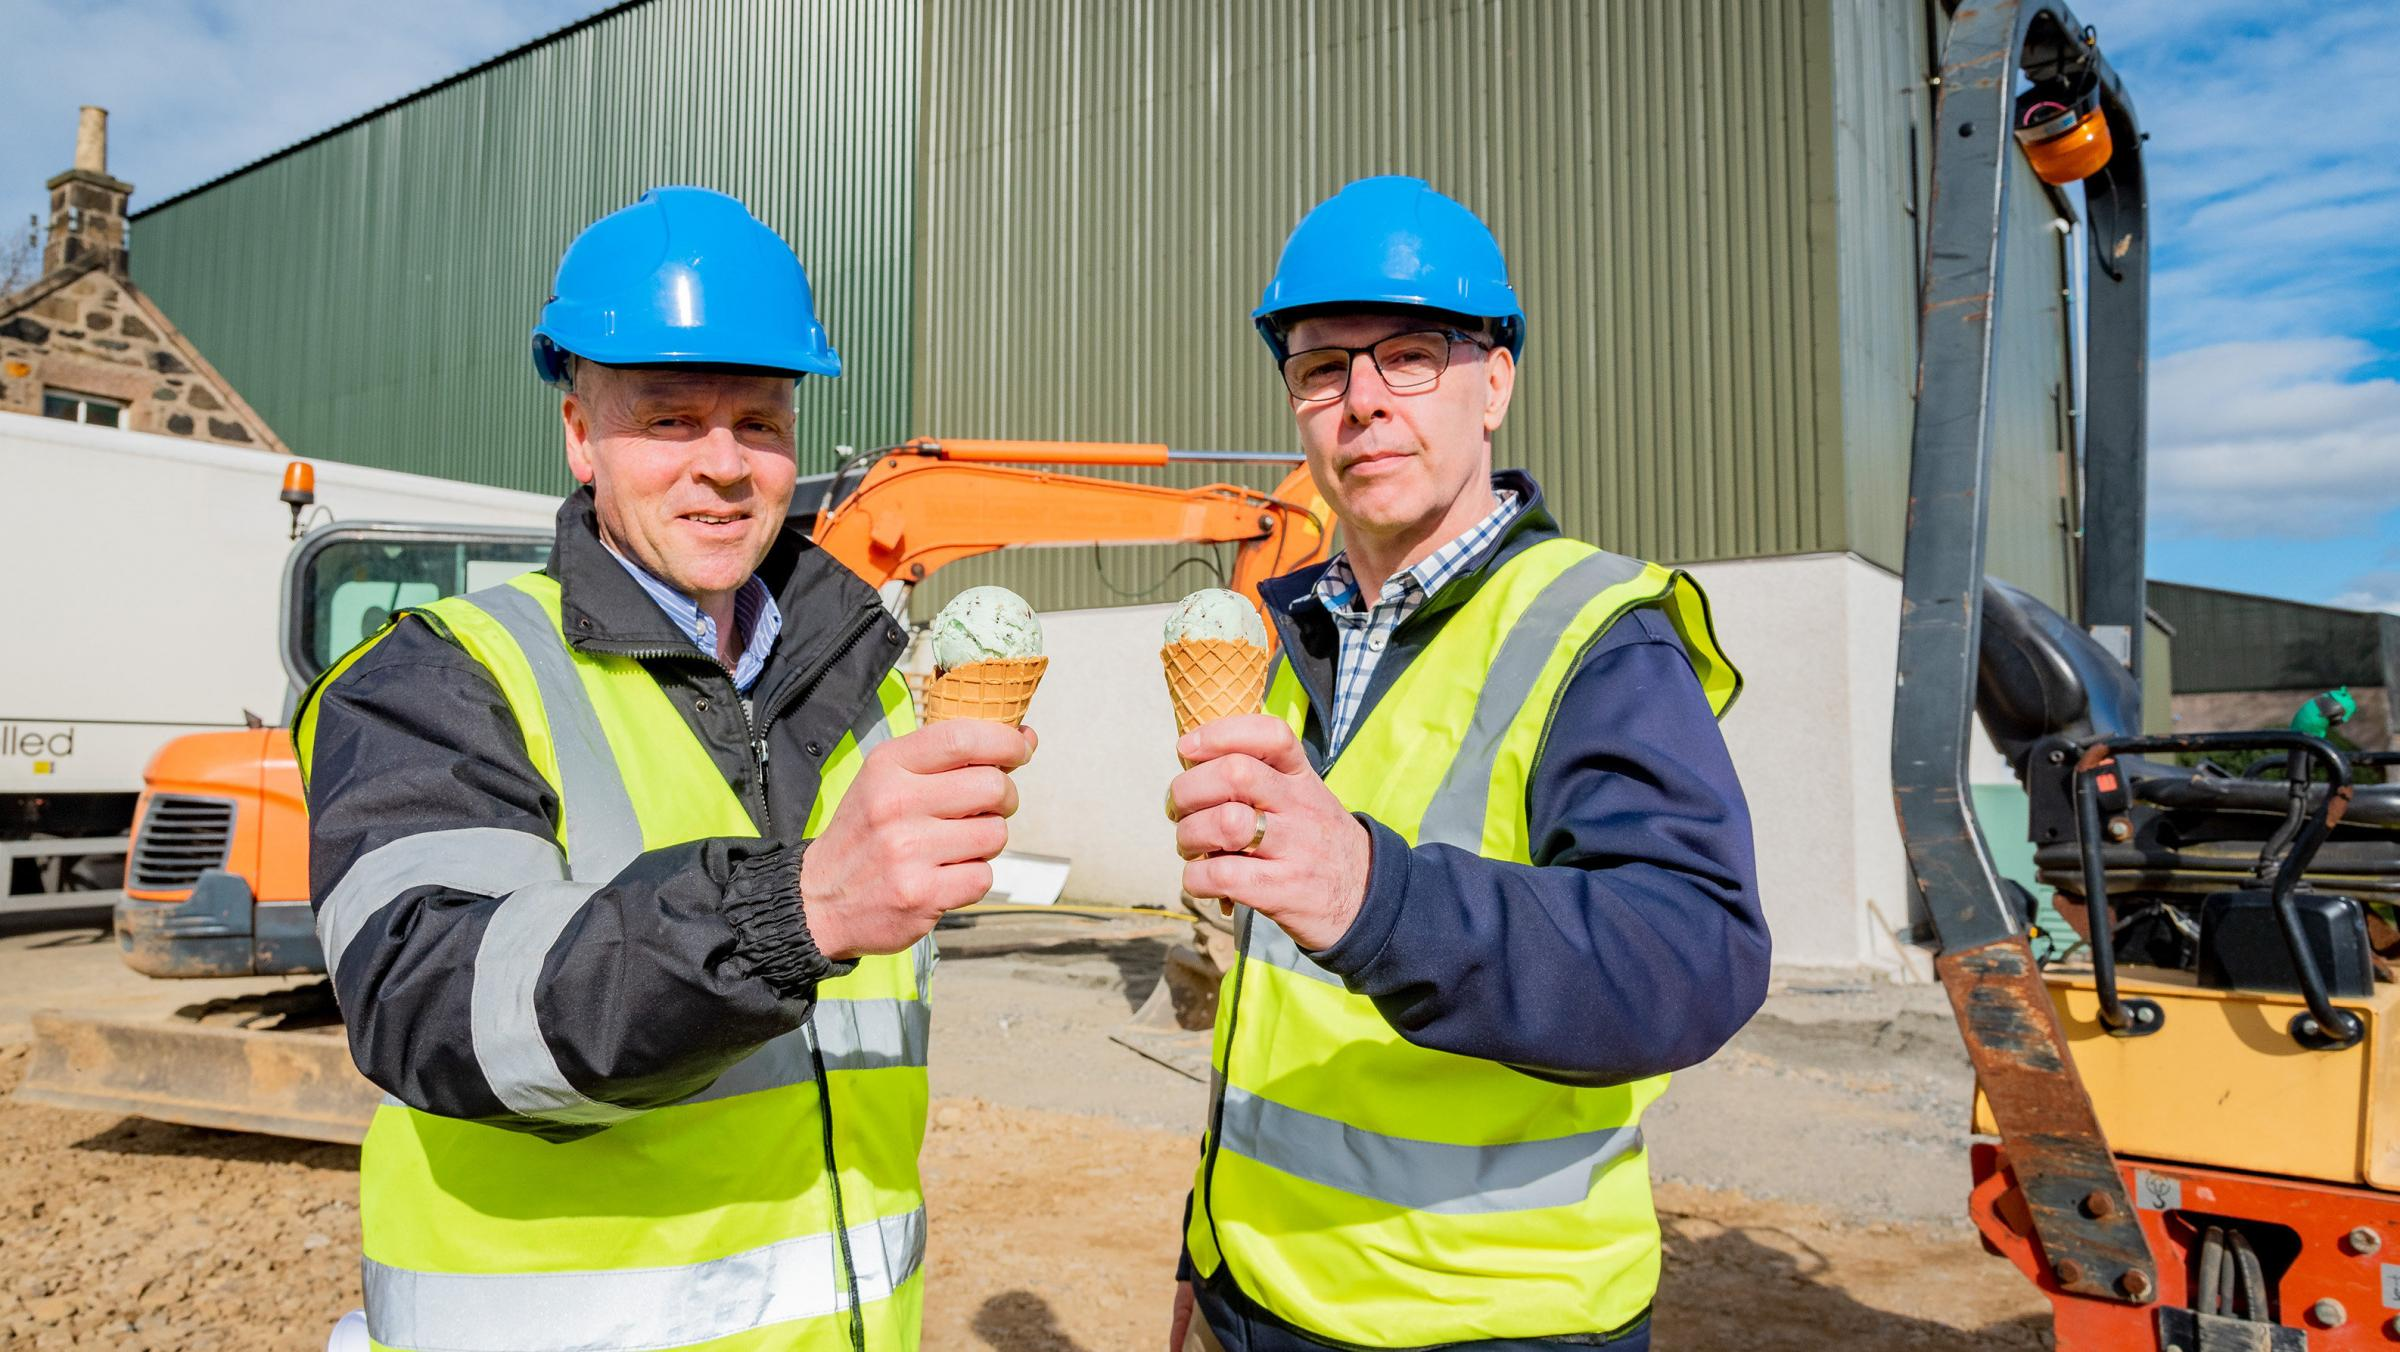 Finance director Gerry Stephens, right, sampling the product with MD Mac Mackie